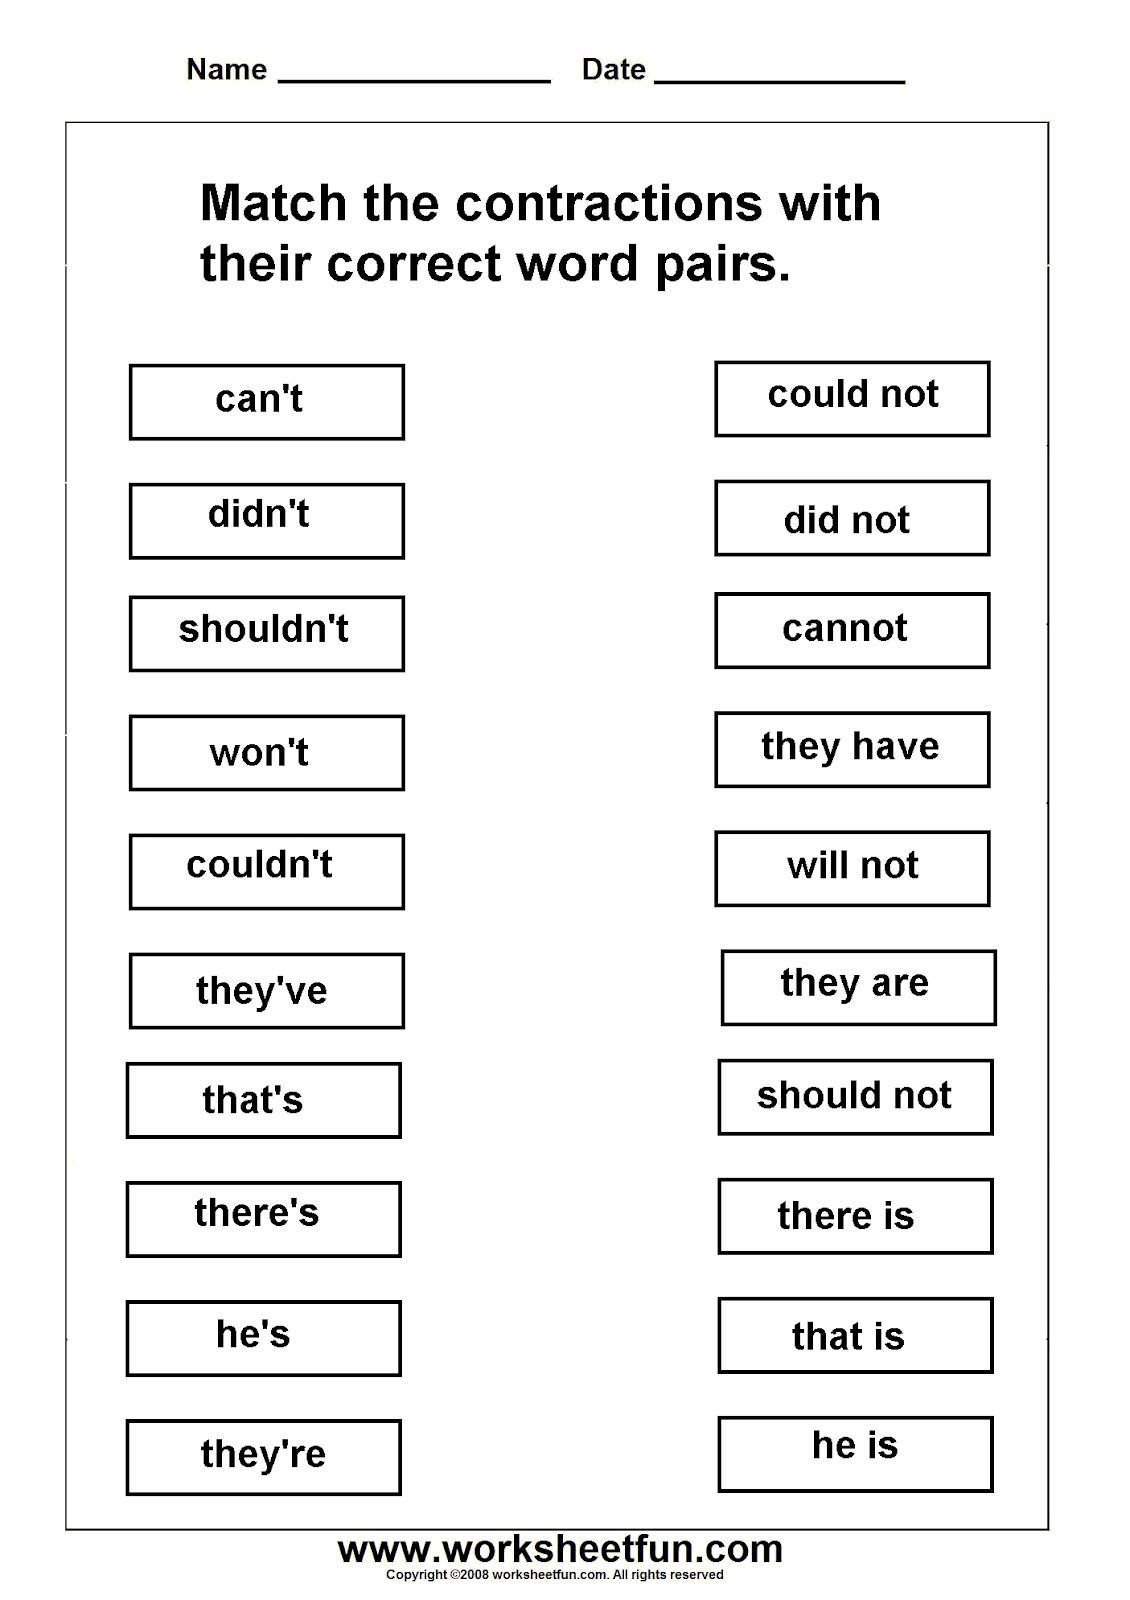 Contractions Worksheets Can T Didn T Shouldn T Won T Couldn T They Ve